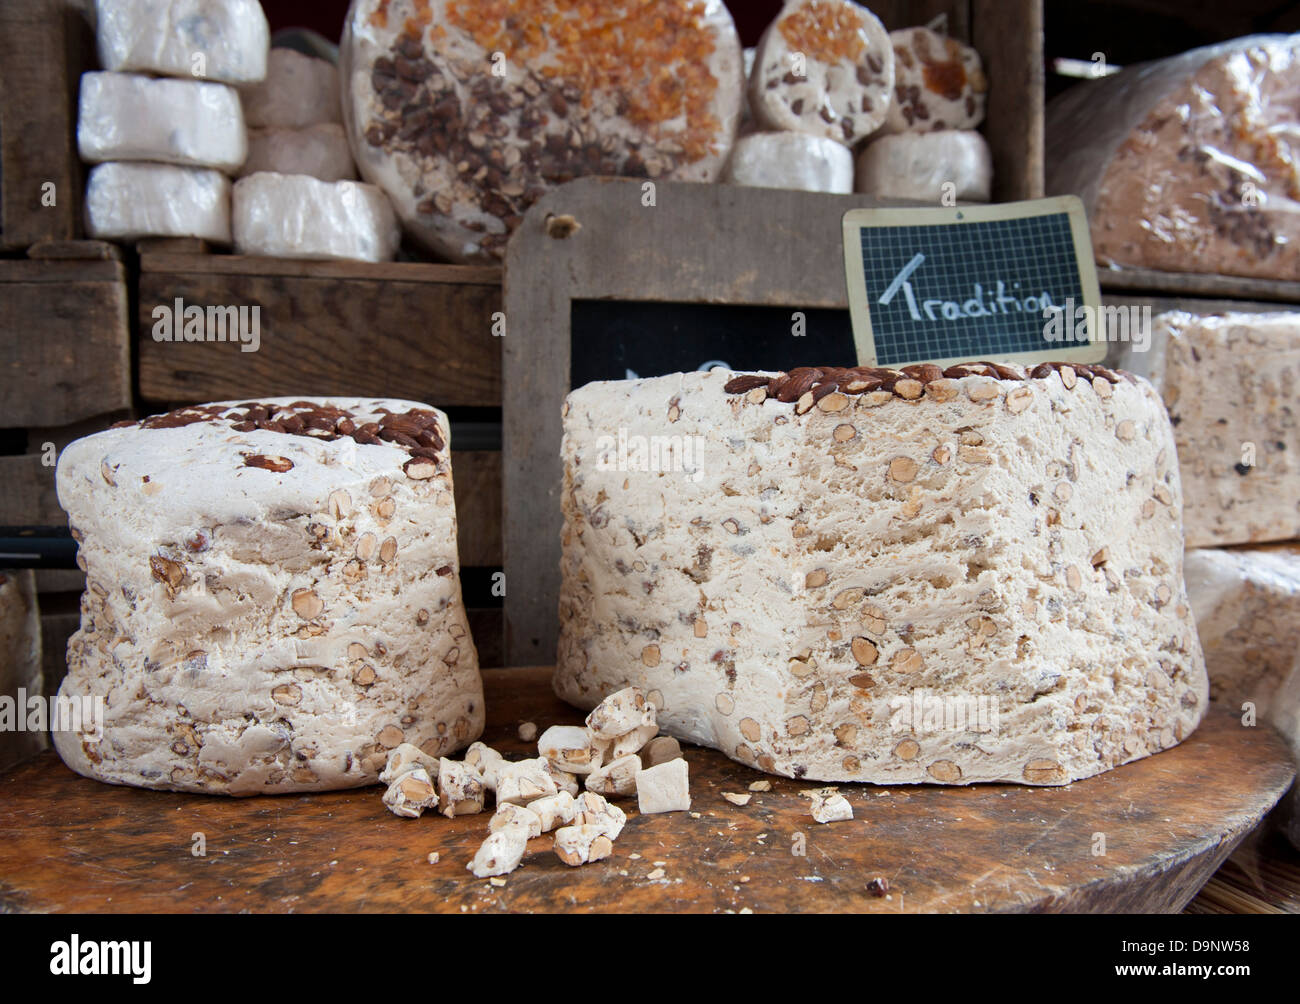 Close-up of traditional nougat sold at the old town's market in Annecy, Haute-Savoie, France - Stock Image